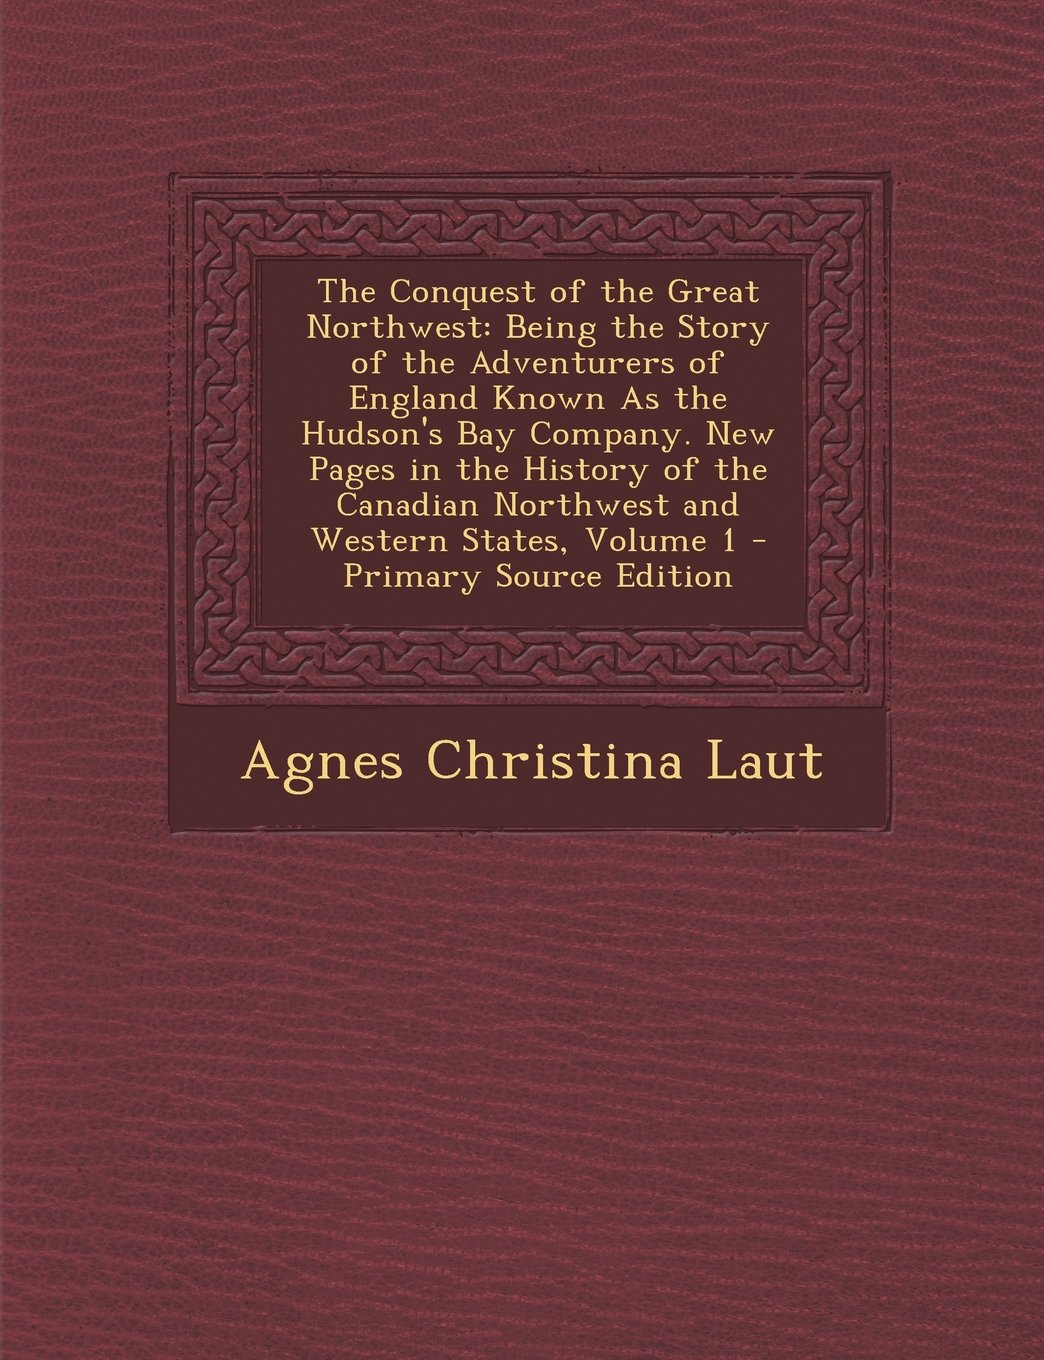 Read Online The Conquest of the Great Northwest: Being the Story of the Adventurers of England Known As the Hudson's Bay Company. New Pages in the History of the Canadian Northwest and Western States, Volume 1 PDF